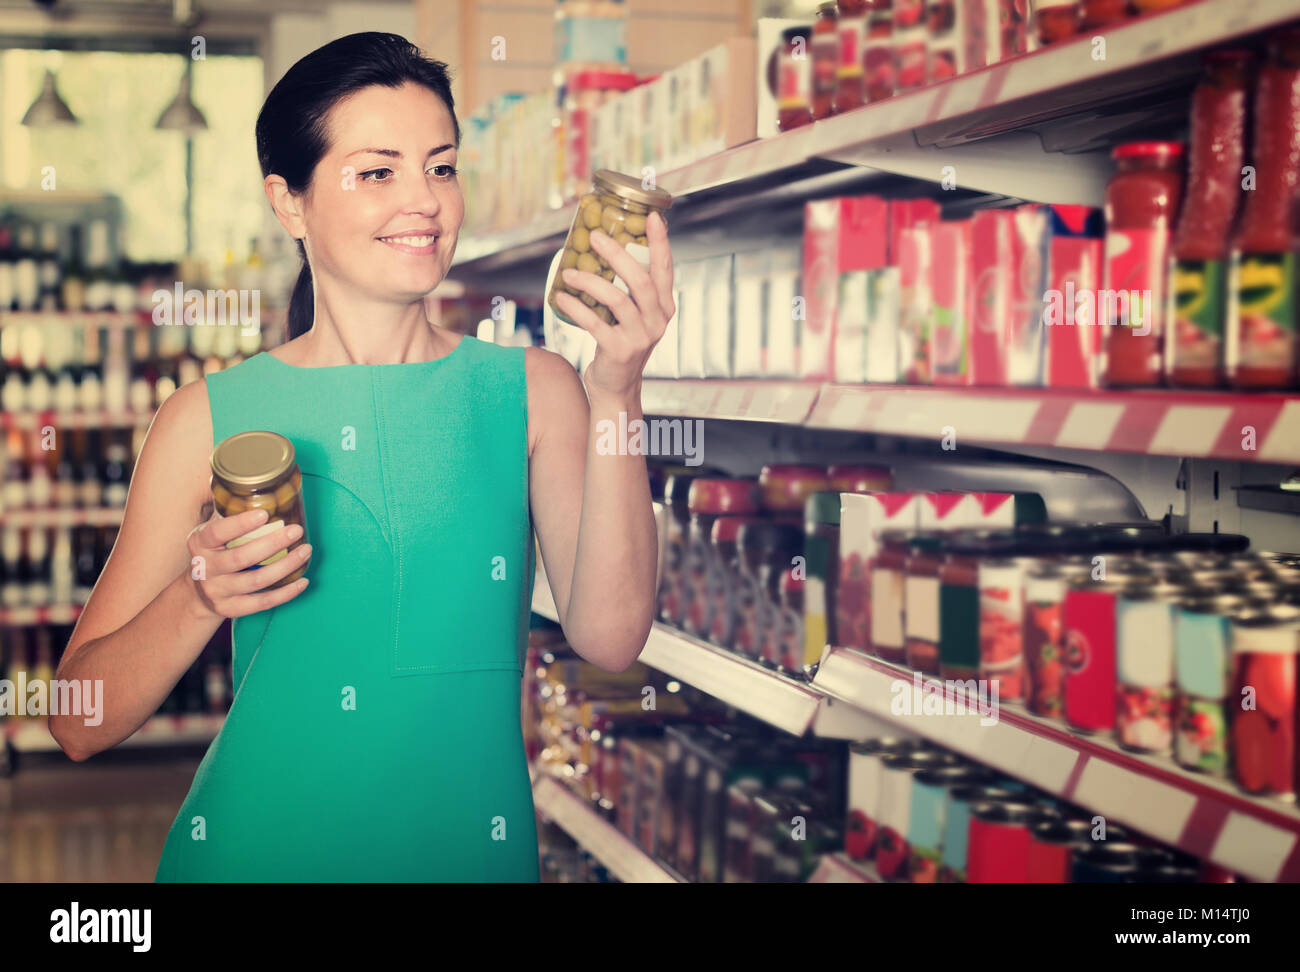 Female is holding jar of preserved olives in the shop. - Stock Image